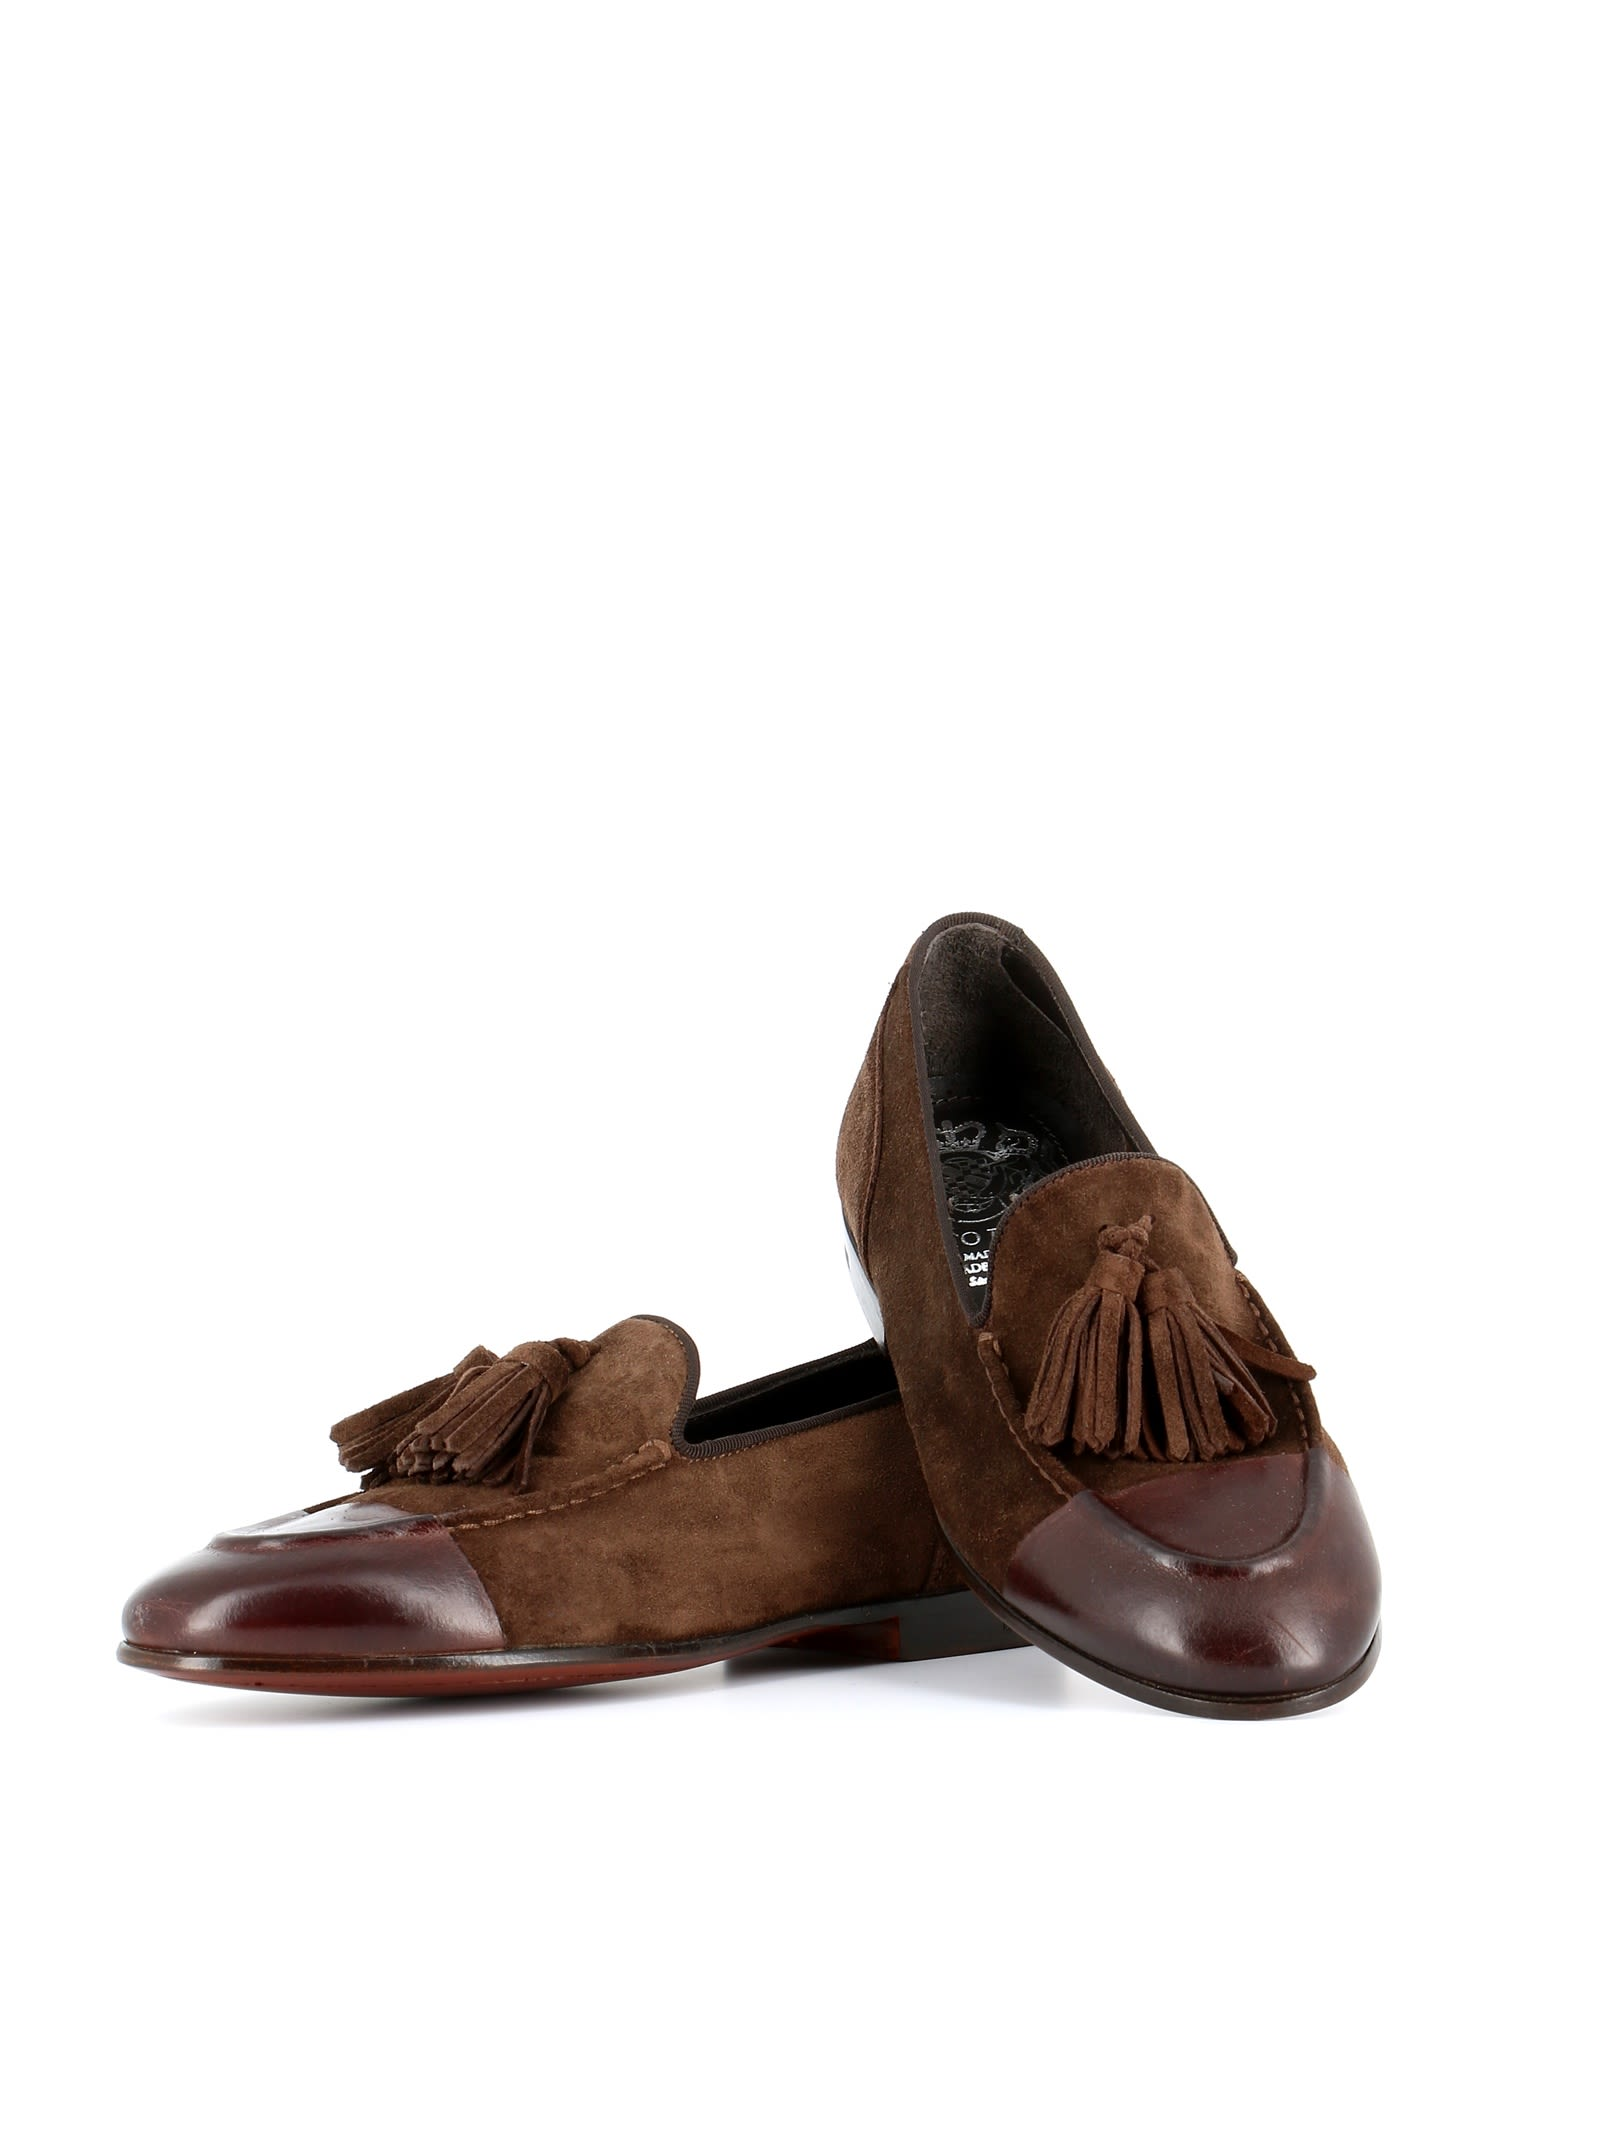 ALBERTO FASCIANI Tassel Loafer tessa 45029 Discount 2018 New Outlet Official Site IMUbR1j